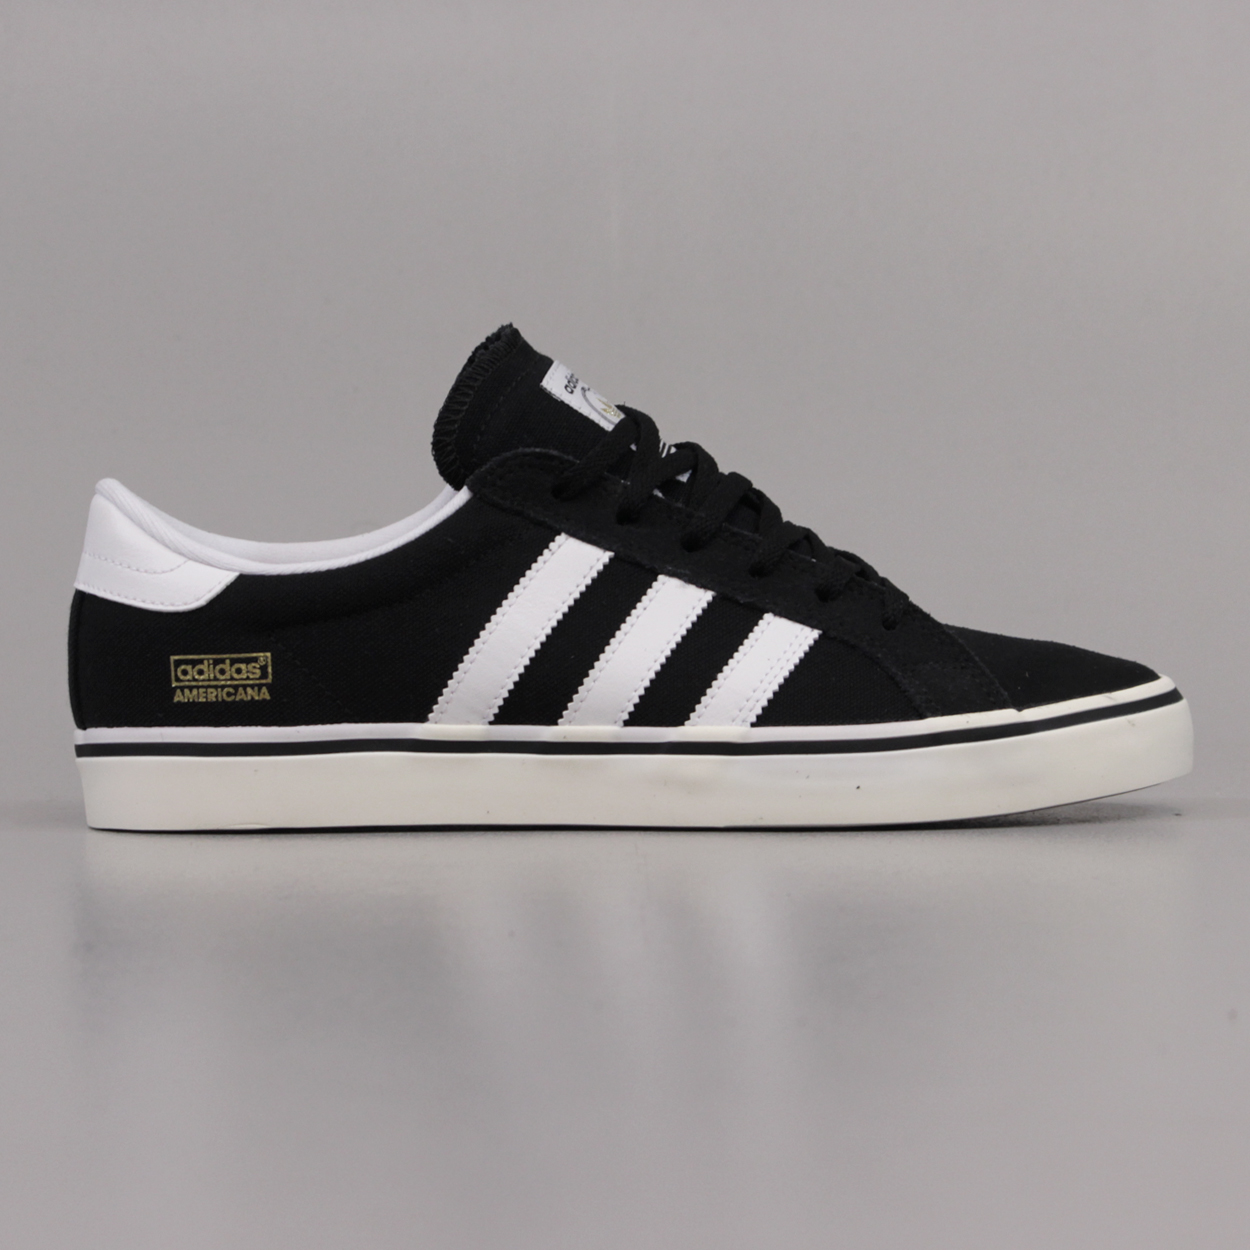 2282450c1 Adidas Skateboarding Americana Vin Low Shoes Black White Ecru £30.00